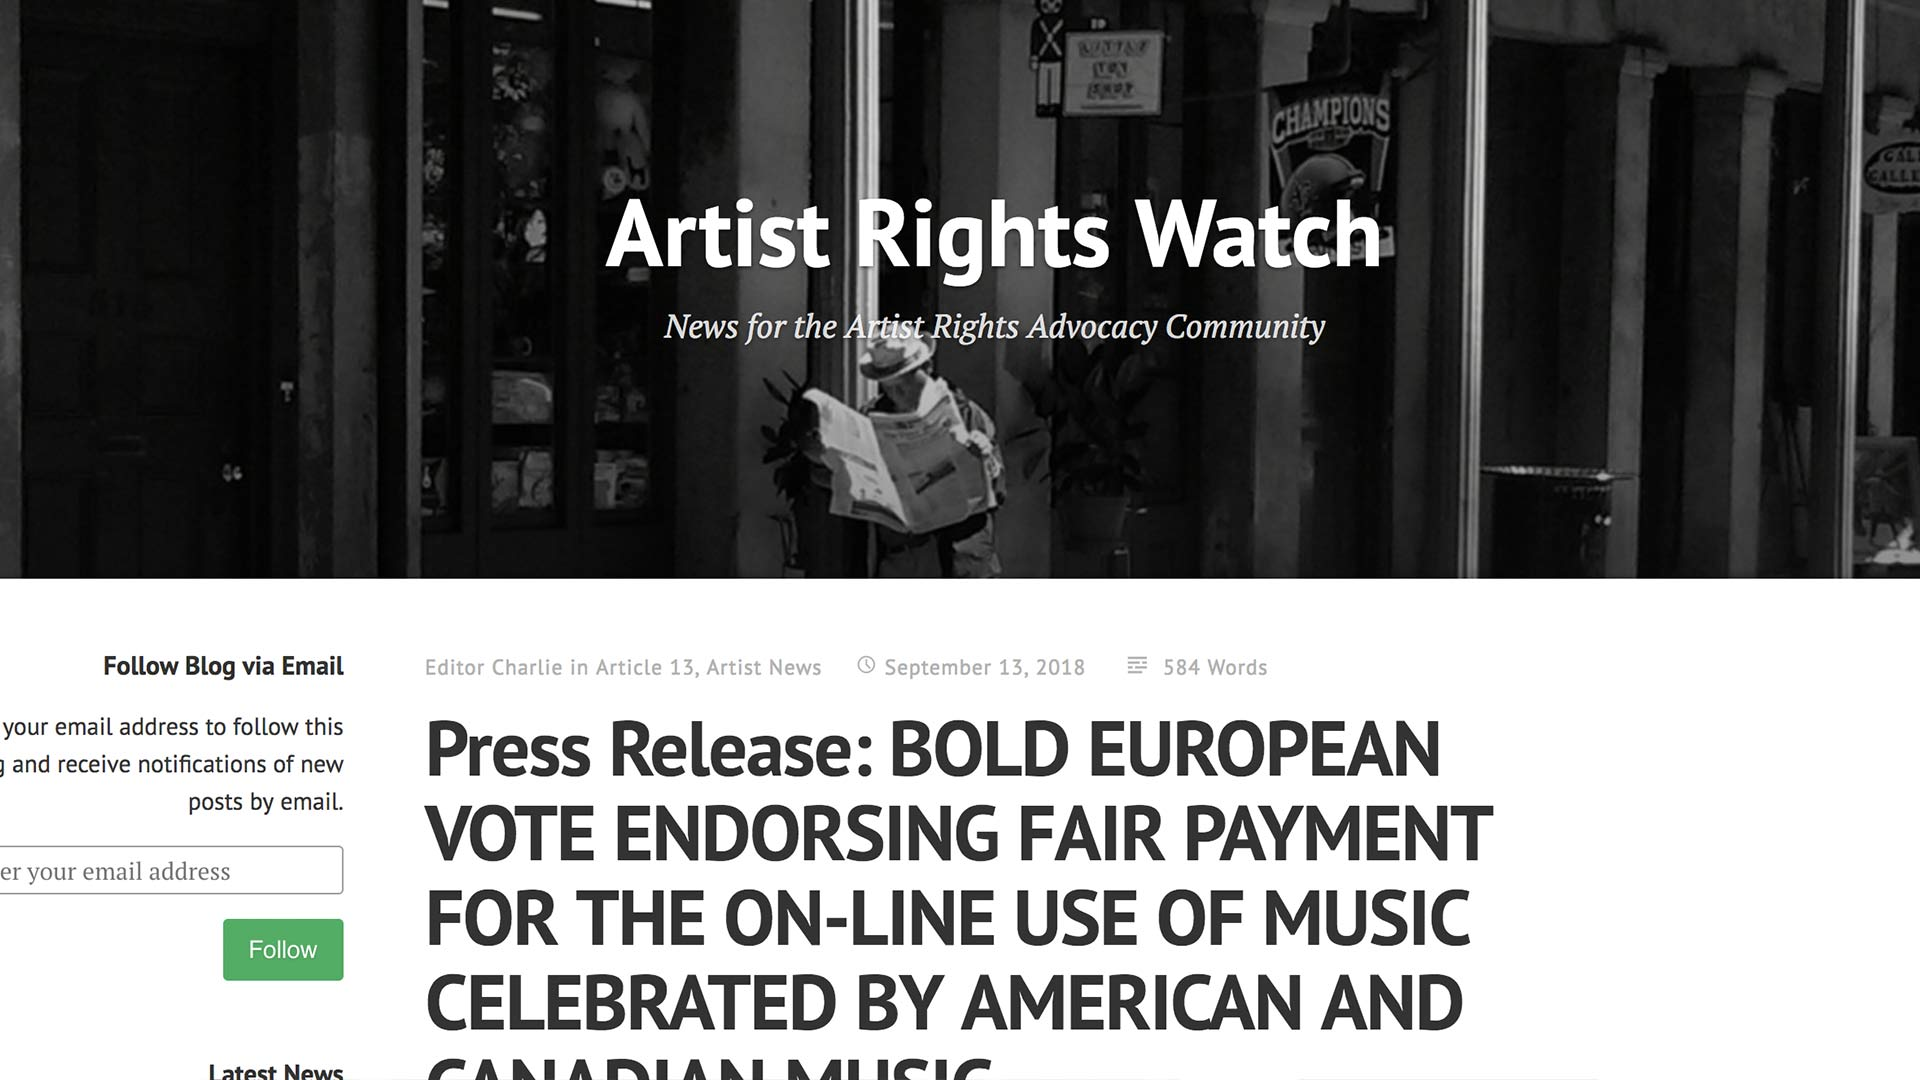 Fairness Rocks News Press Release: BOLD EUROPEAN VOTE ENDORSING FAIR PAYMENT FOR THE ON-LINE USE OF MUSIC CELEBRATED BY AMERICAN AND CANADIAN MUSIC CREATORS (MCNA)